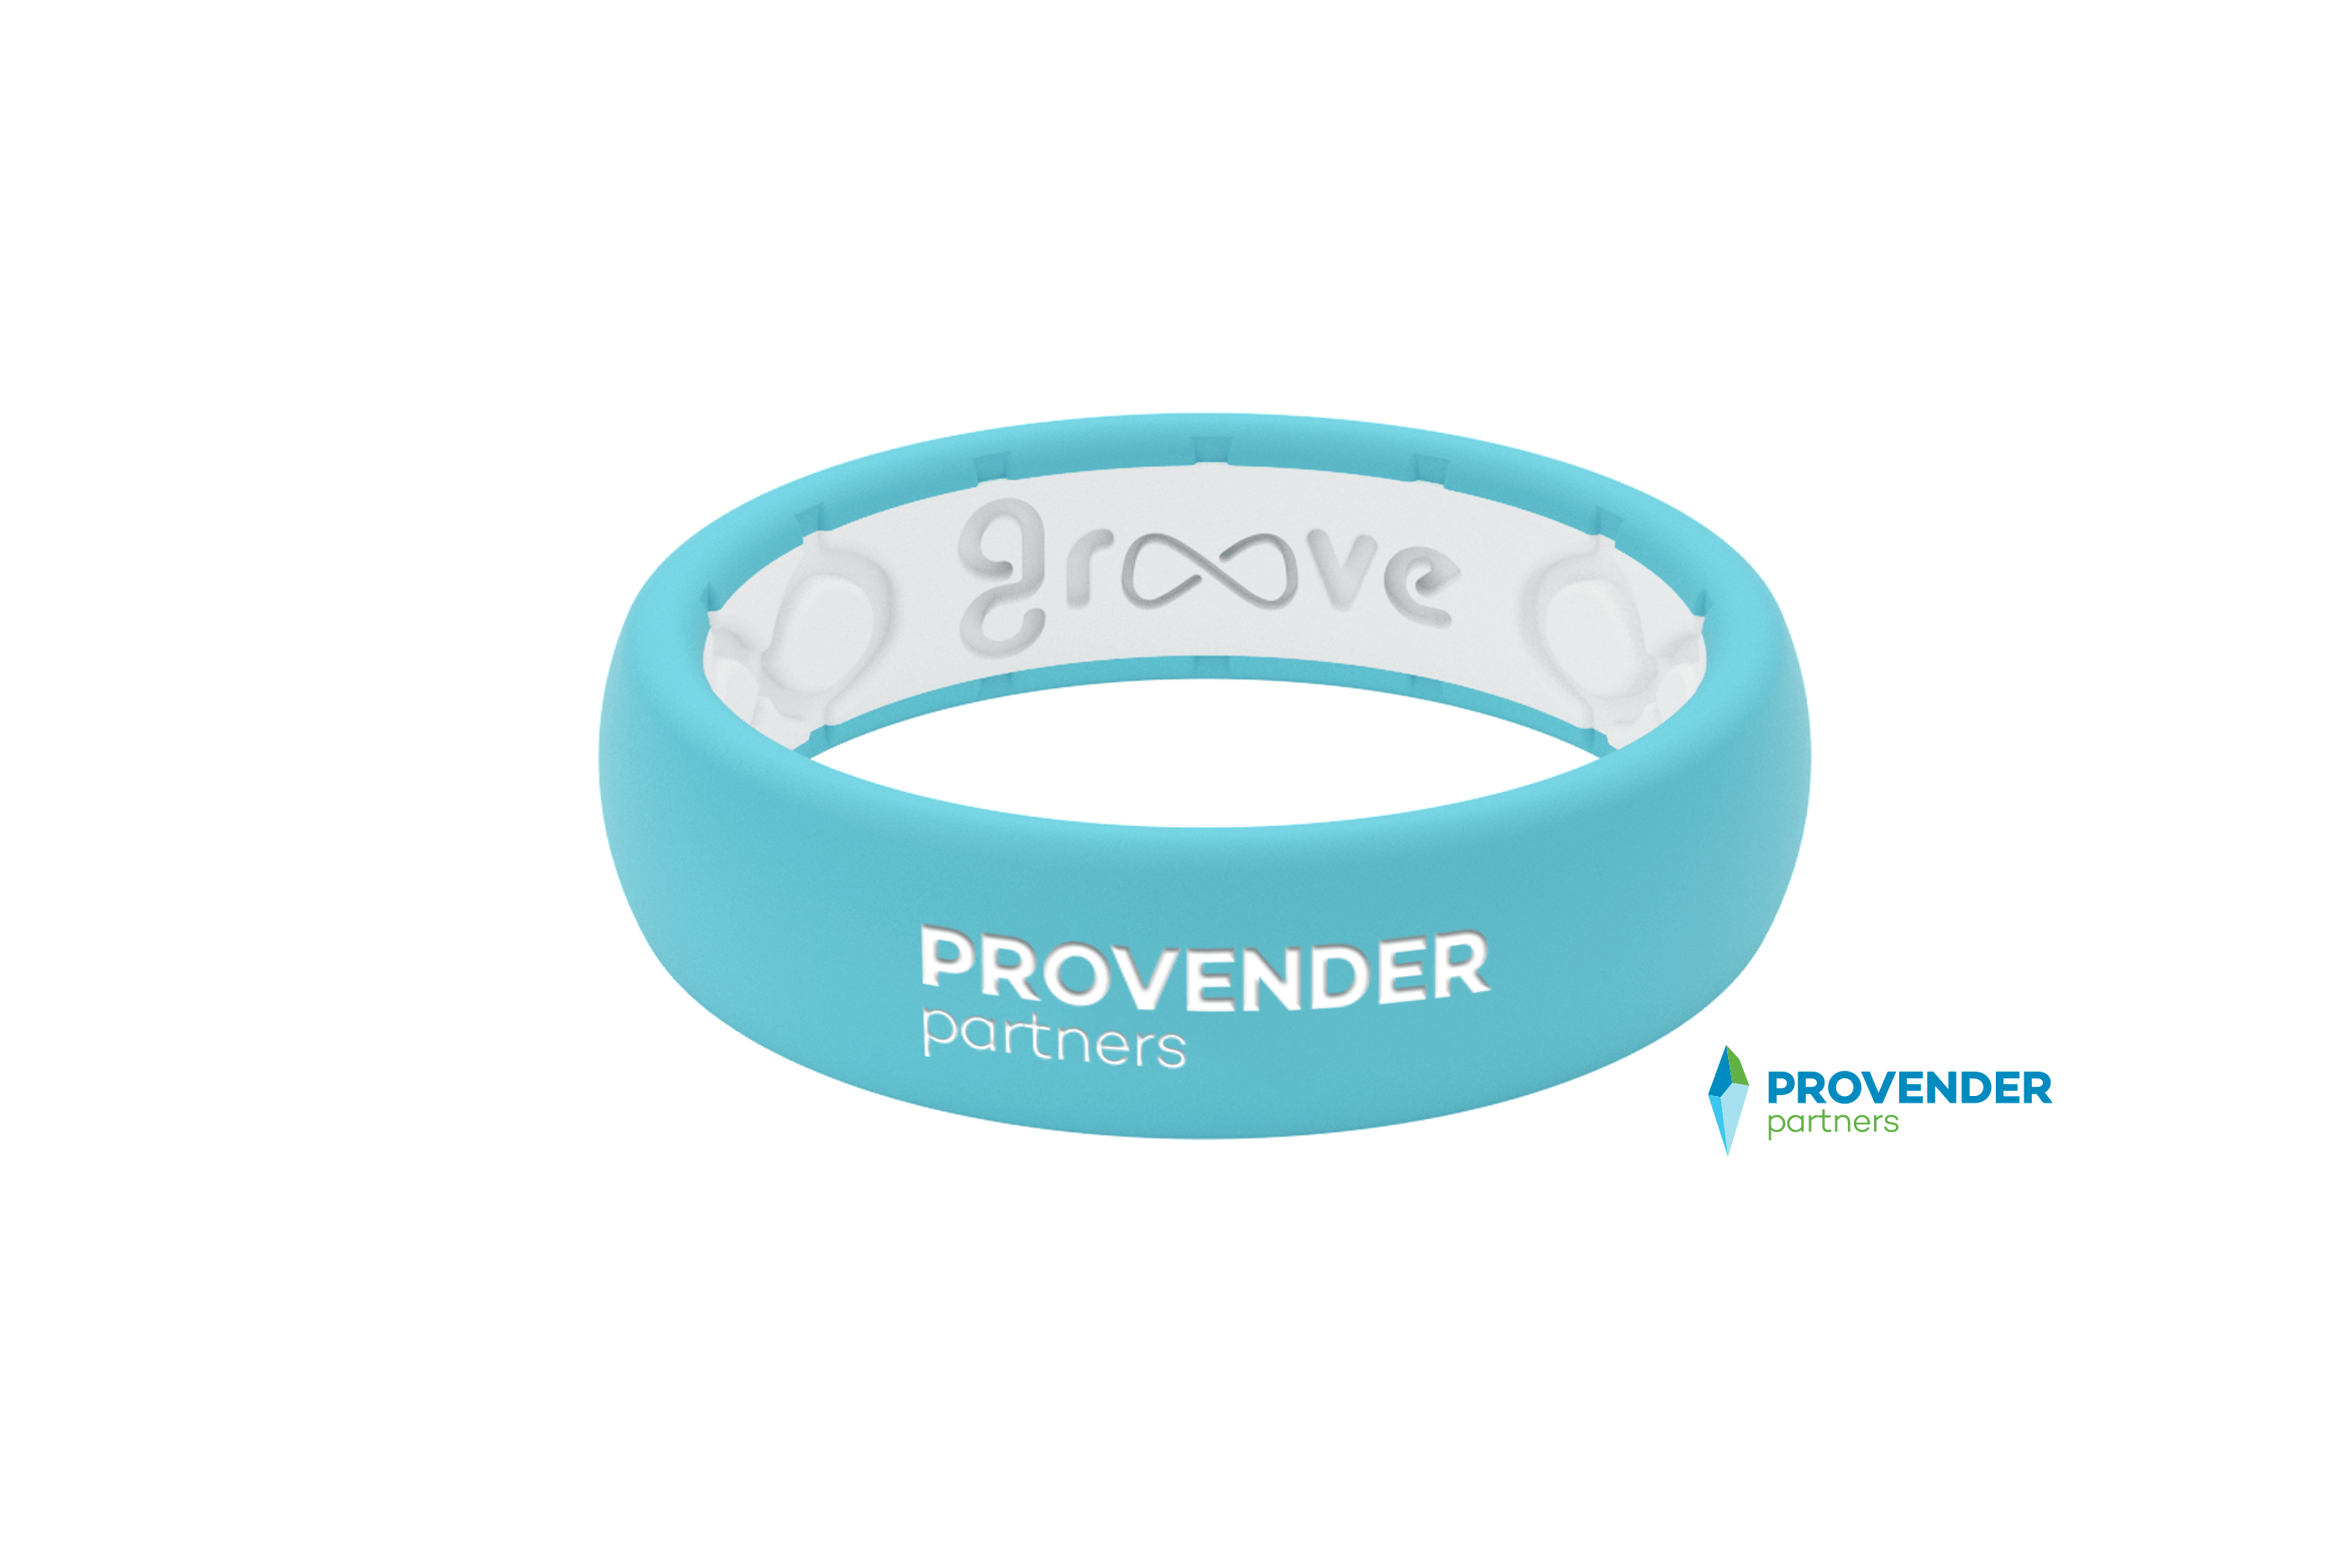 Provender Partners Turquoise White Logo  viewed front on